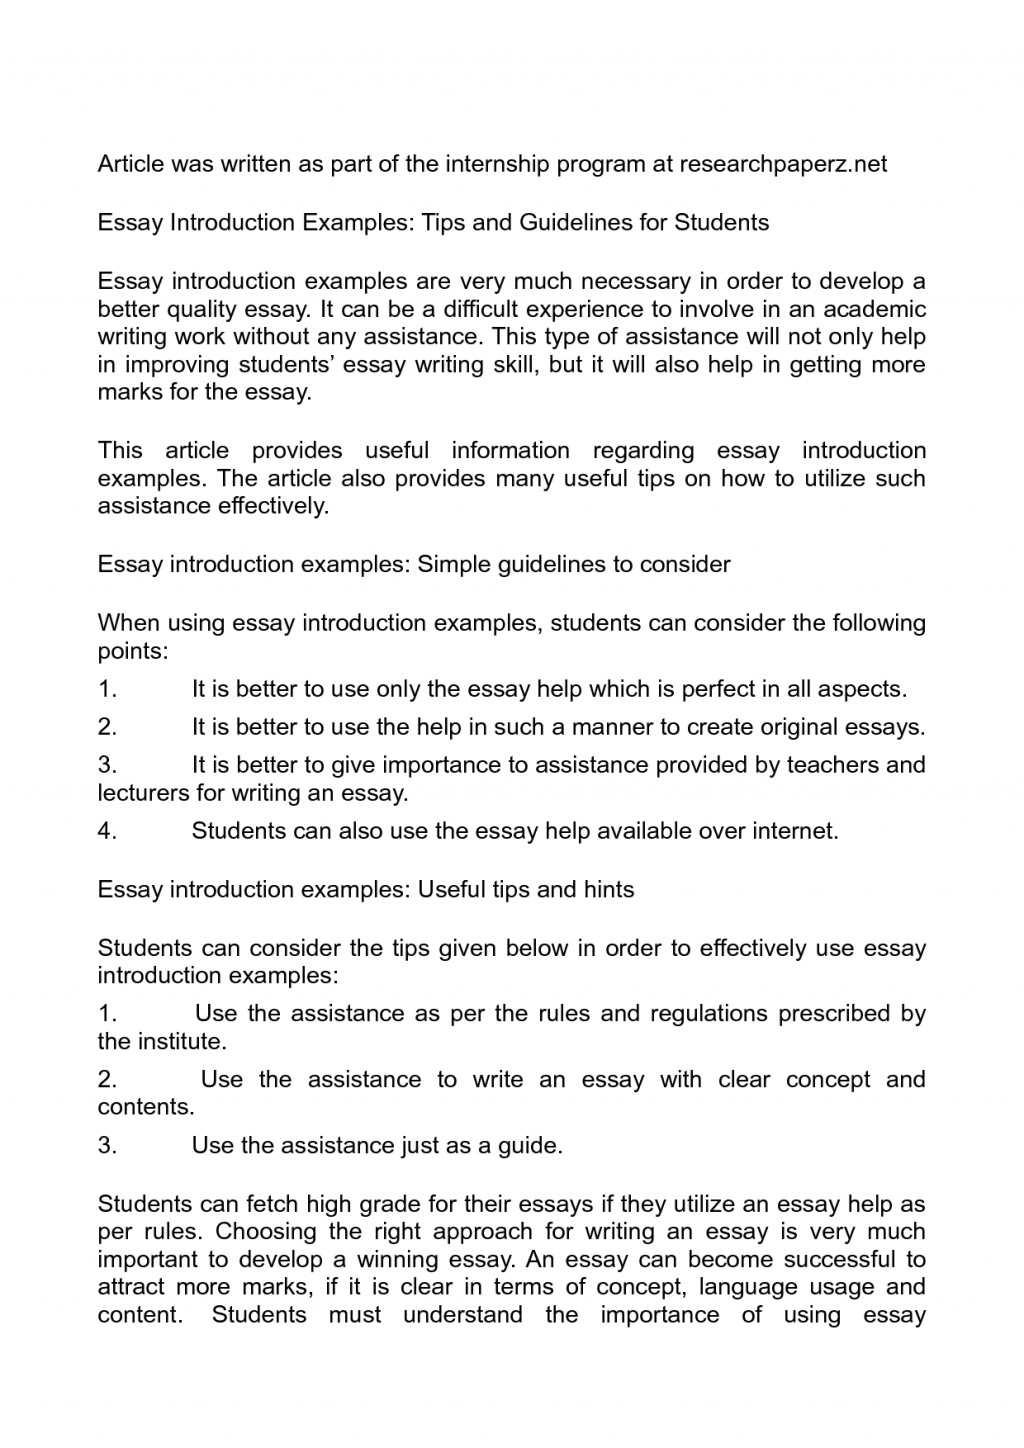 003 Eyx5t6okob Introduction Essays Outstanding Essay Examples University Middle School Writing Compare And Contrast Large